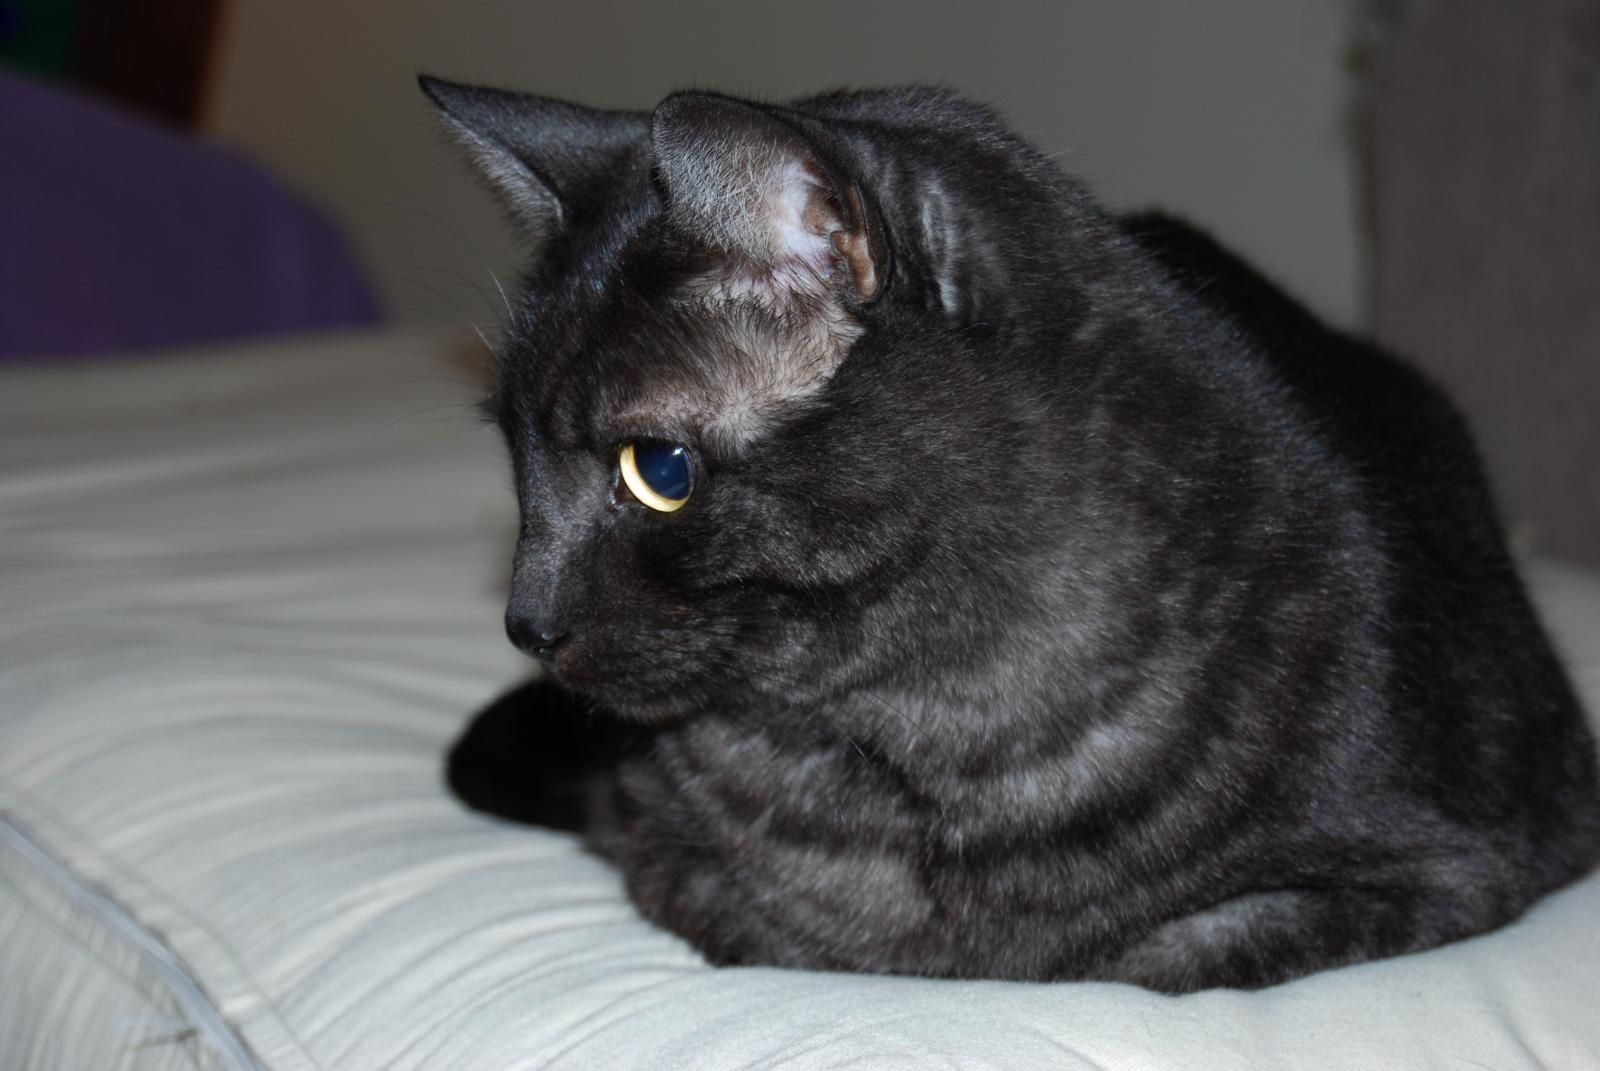 Dilutions And Modifiers Of Coat Color In Cats Color Genetics Asian Cat Black Smoke Cat Most Beautiful Cat Breeds